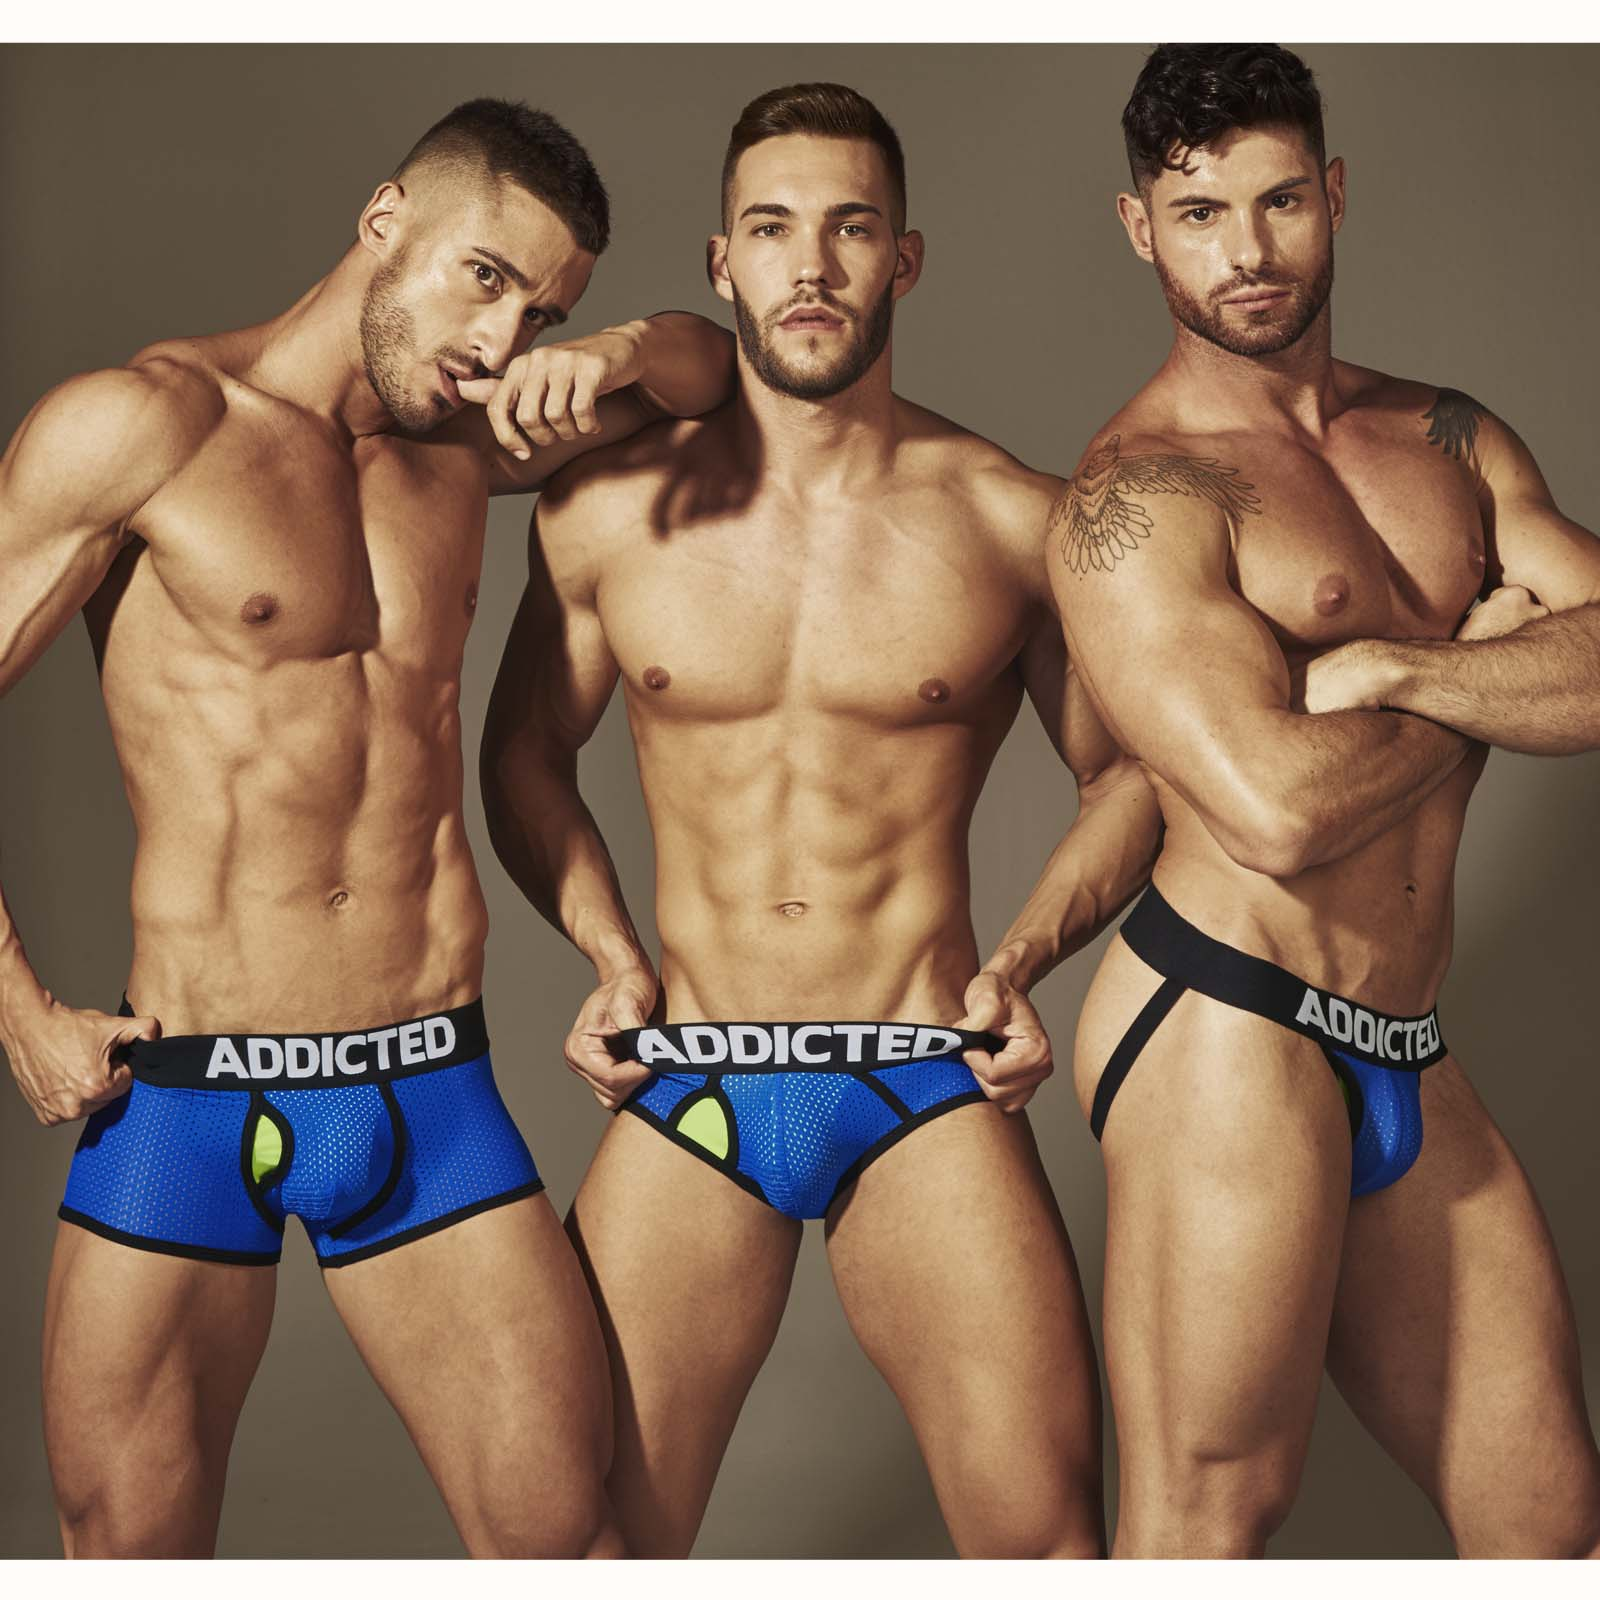 Jockstrap Addicted AD498